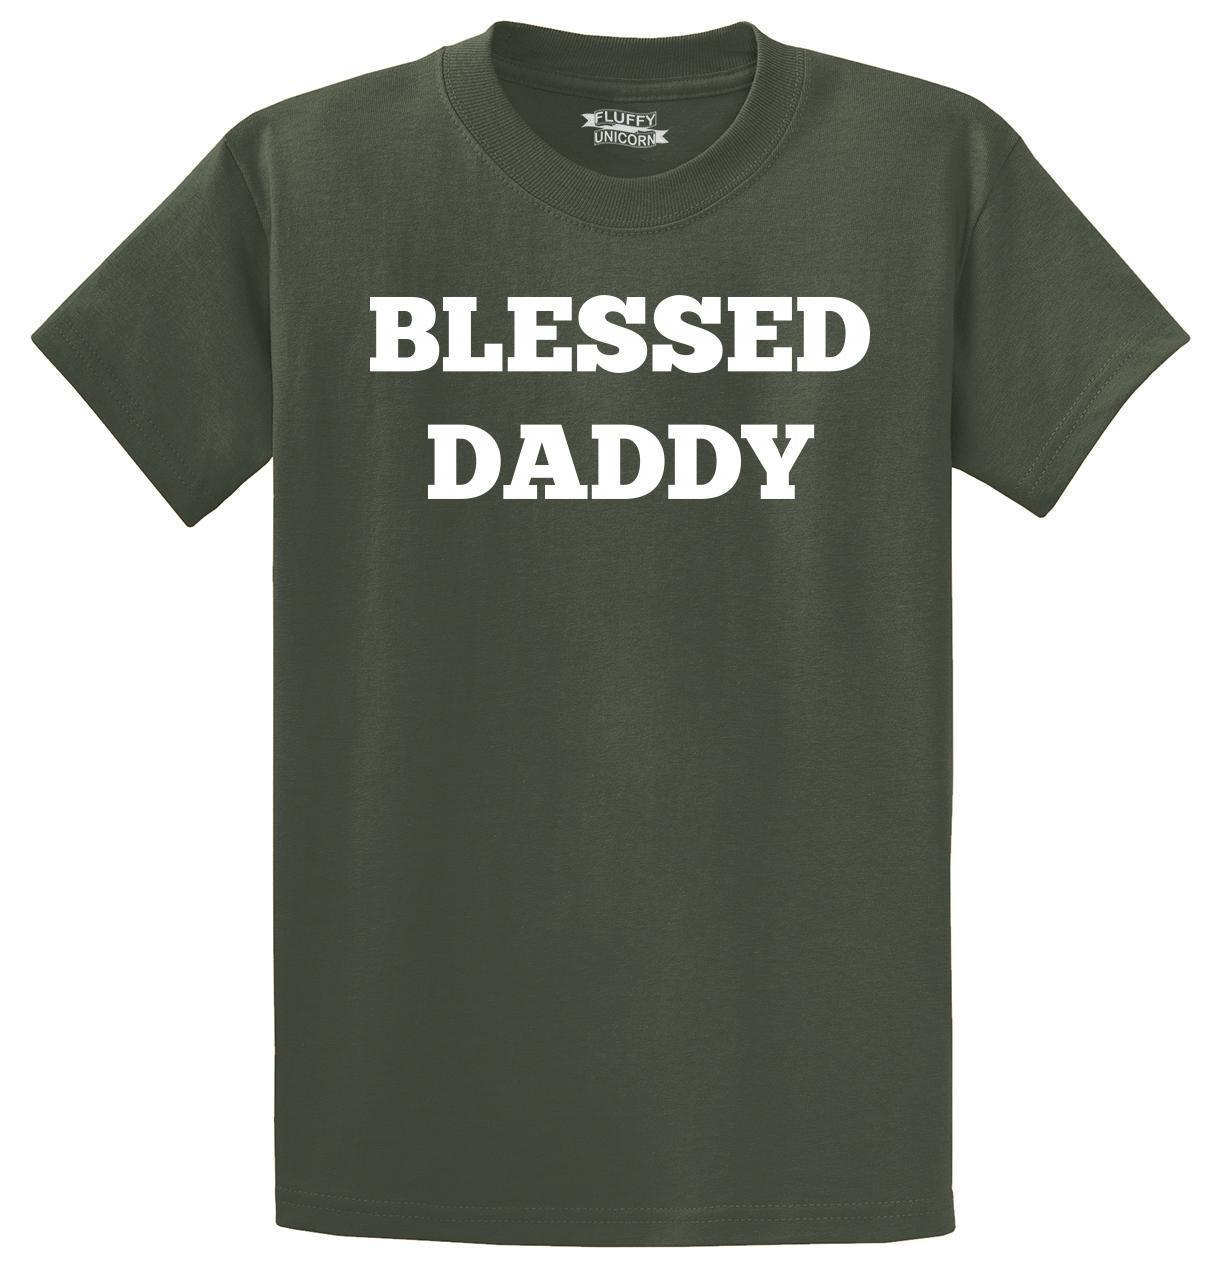 e0343f0ab Mens Blessed Daddy T Shirt Fathers Day Husband Shirt Funny Unisex Casual Tee  Gift T Shirt S Tees Shirts From Elite_direct, $12.96| DHgate.Com